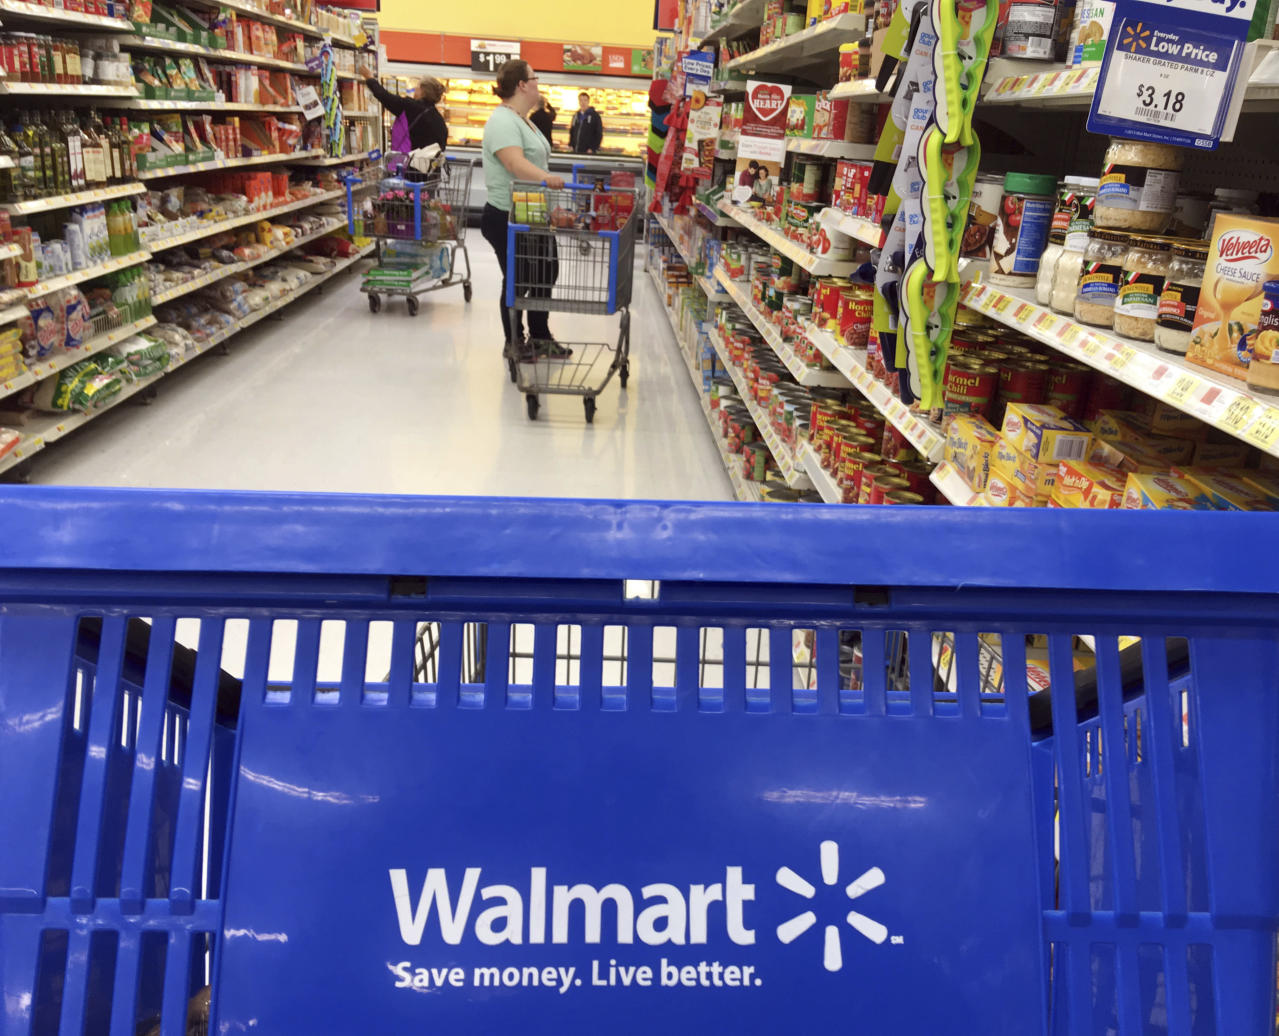 Walmart expands online grocery delivery, upping the ante in